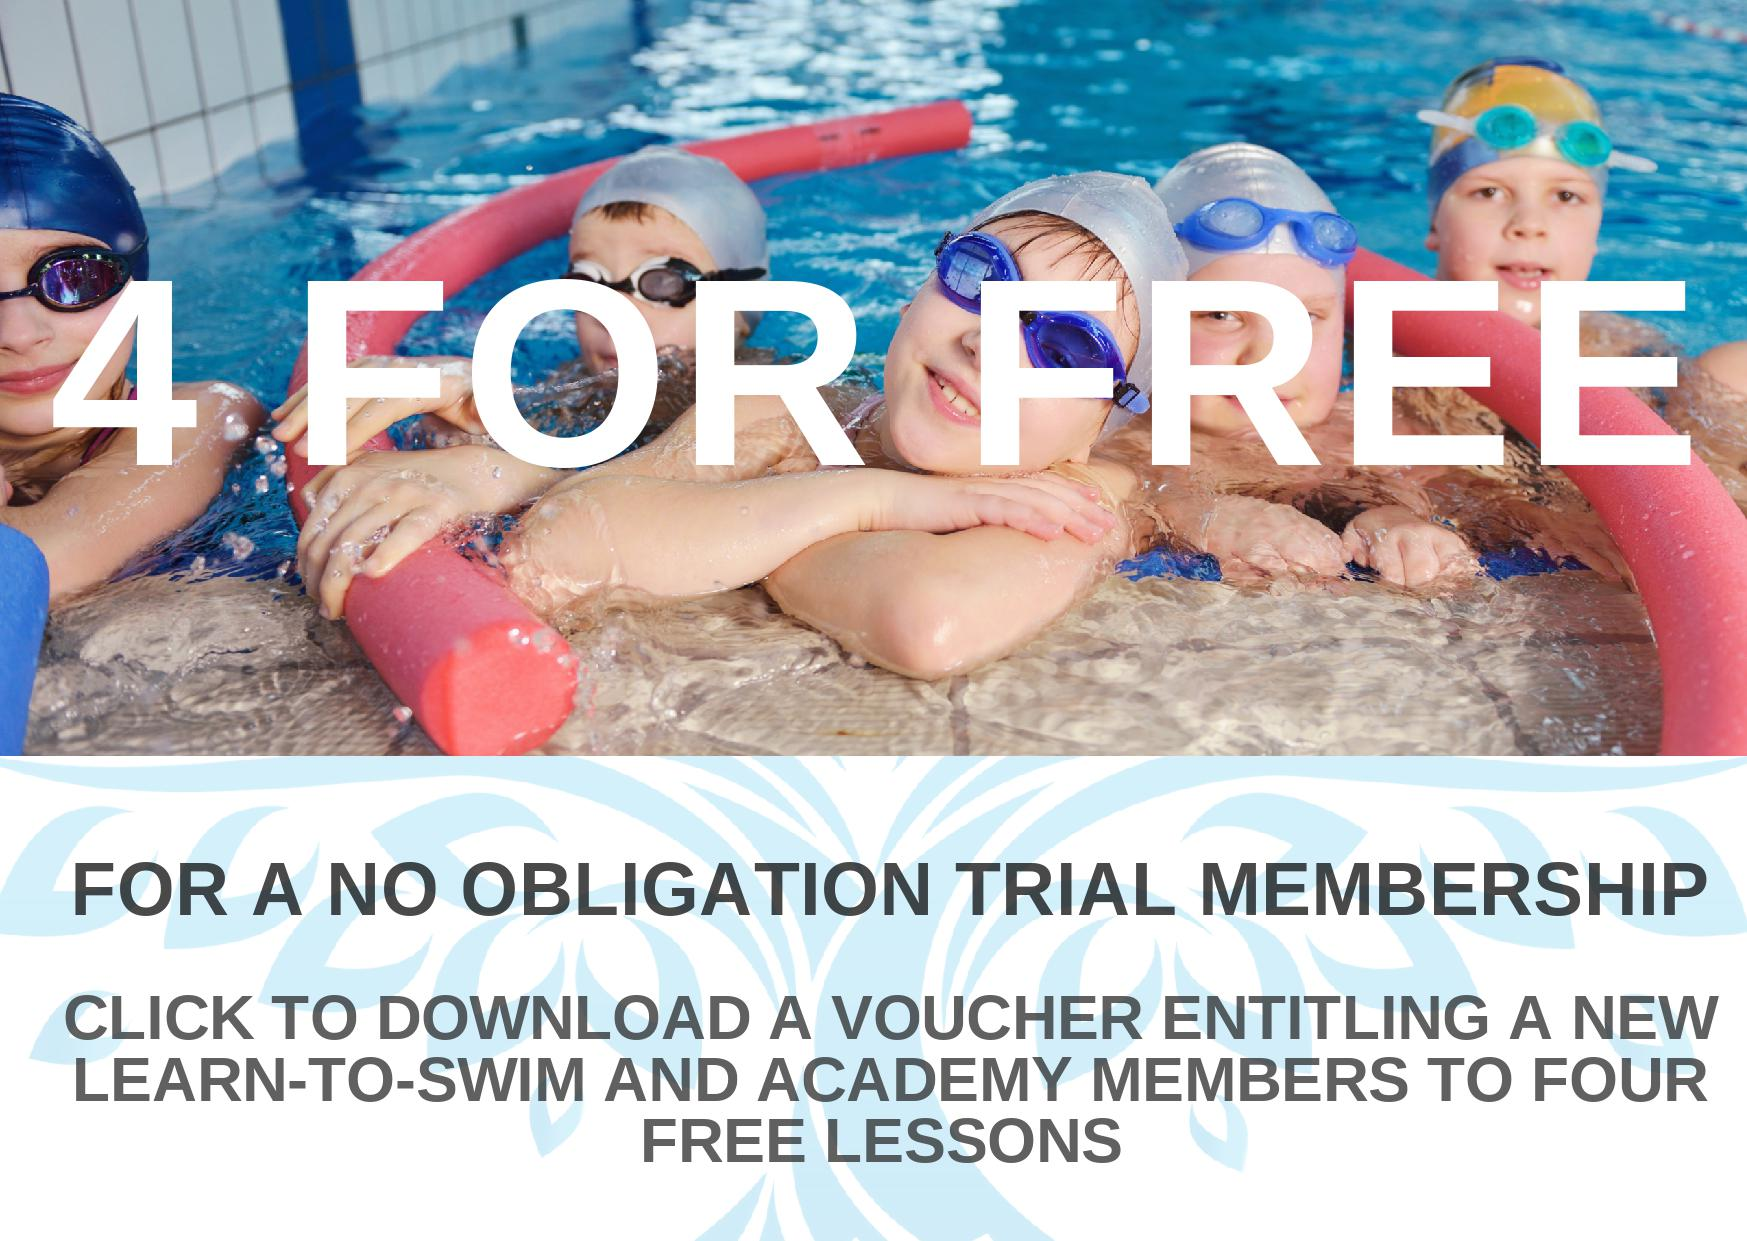 WYRE FOREST SWIMMING CLUB PROMOTION